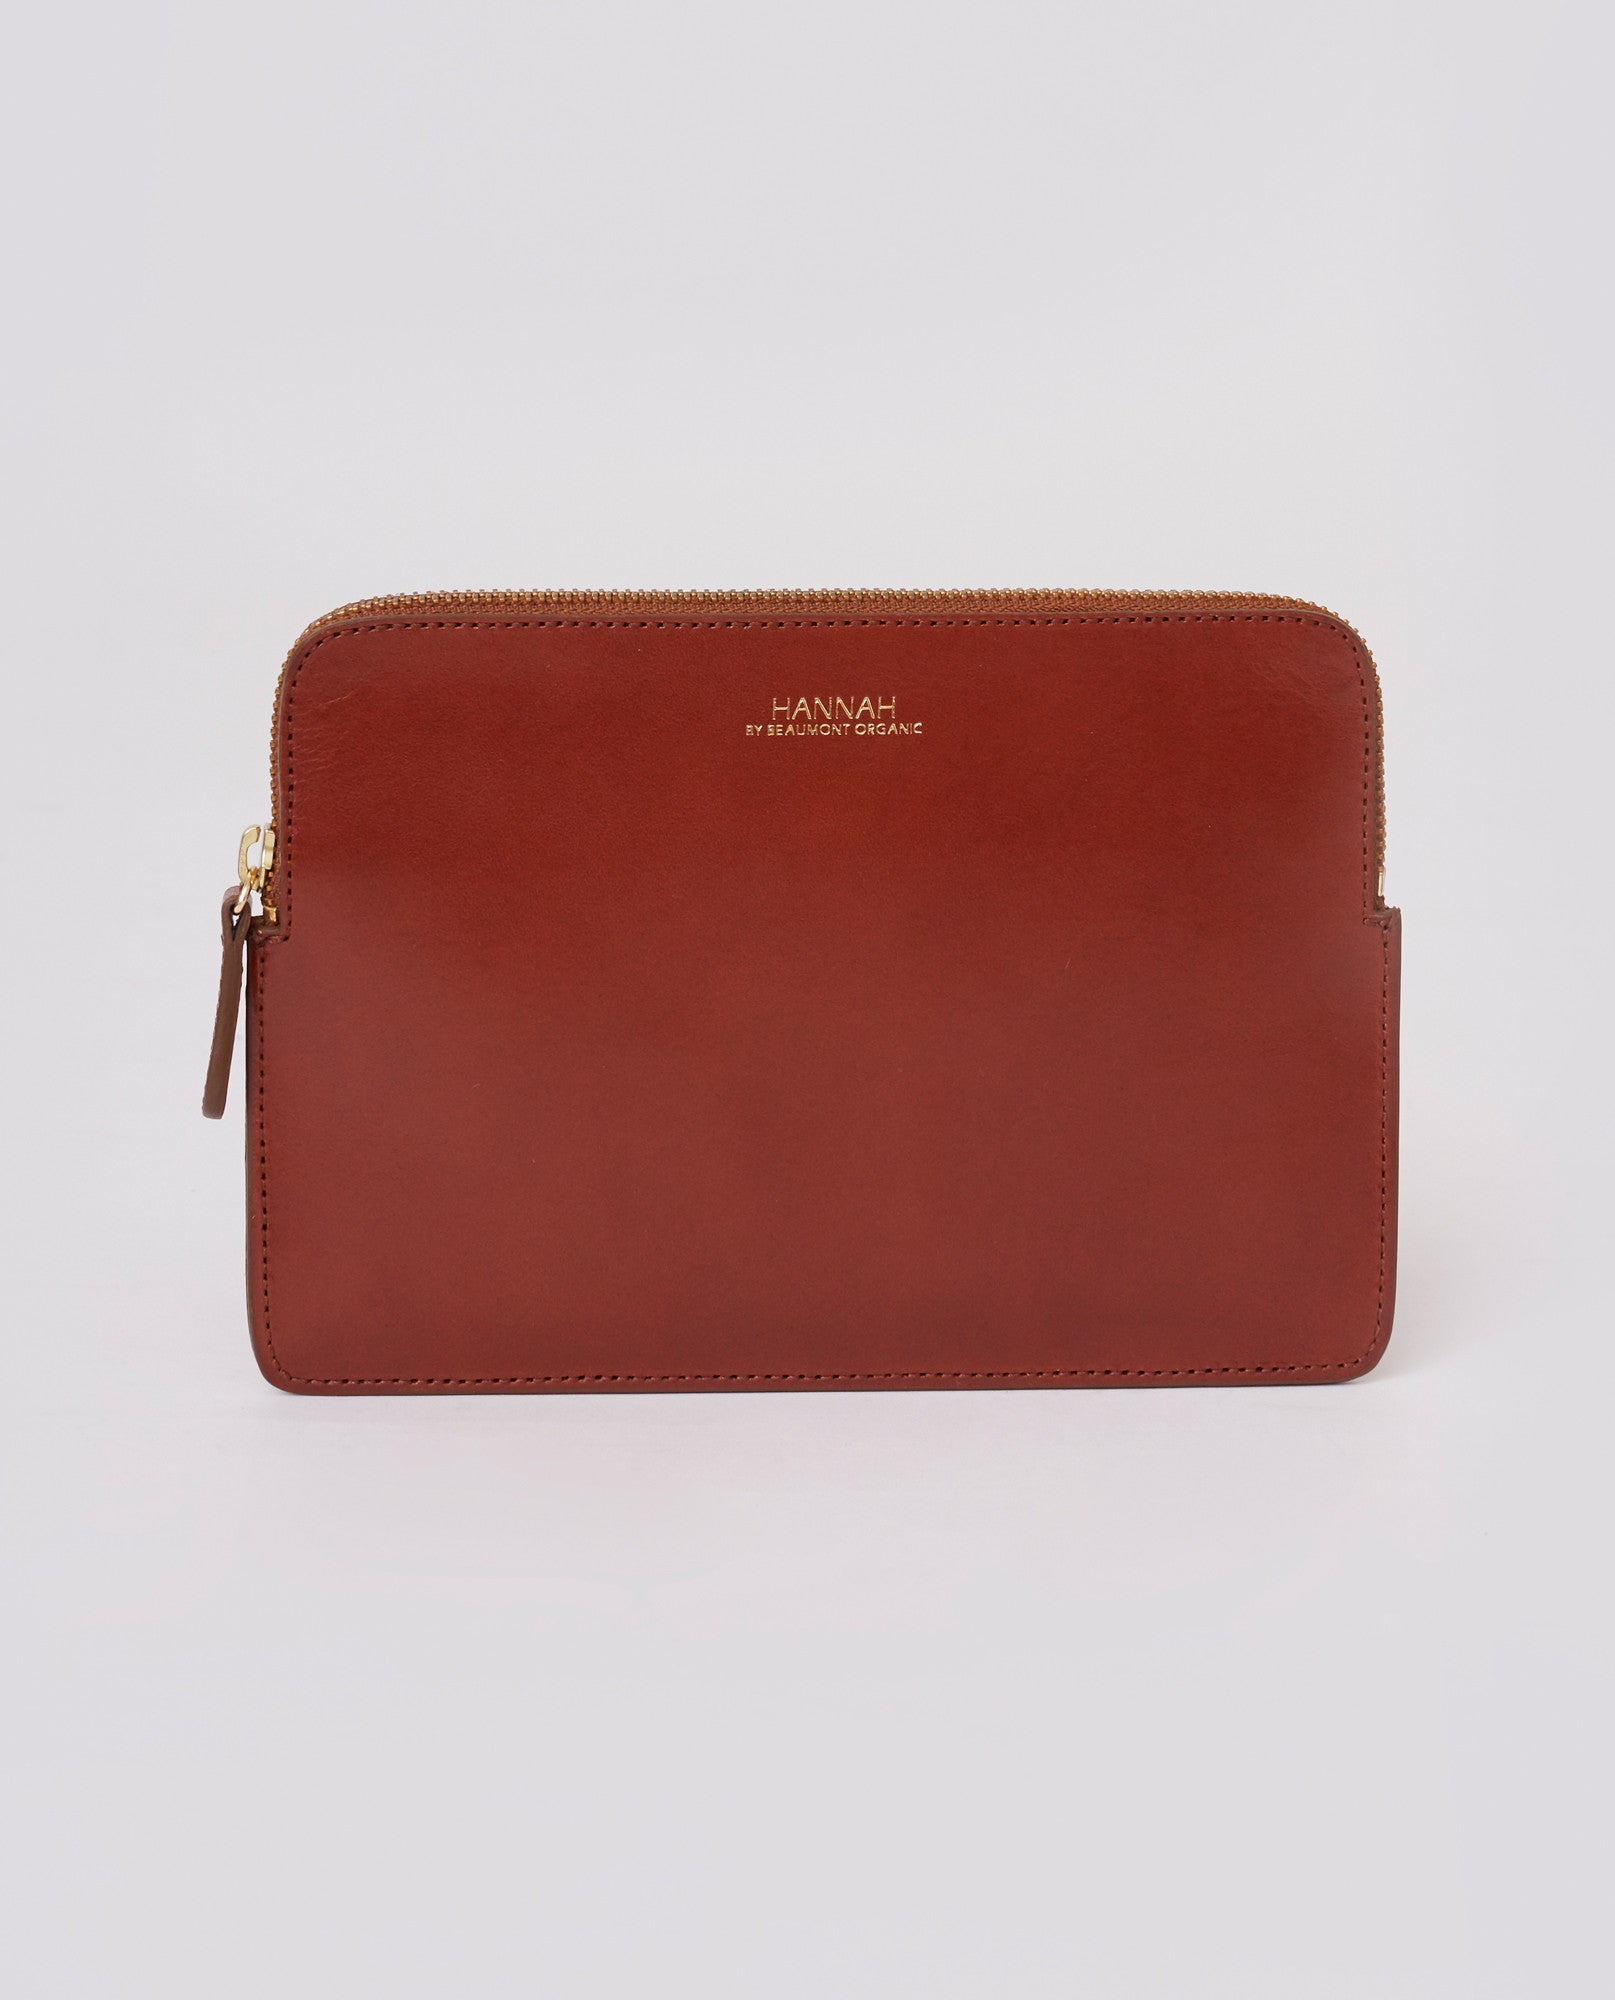 NAPLES Leather Purse In Tan